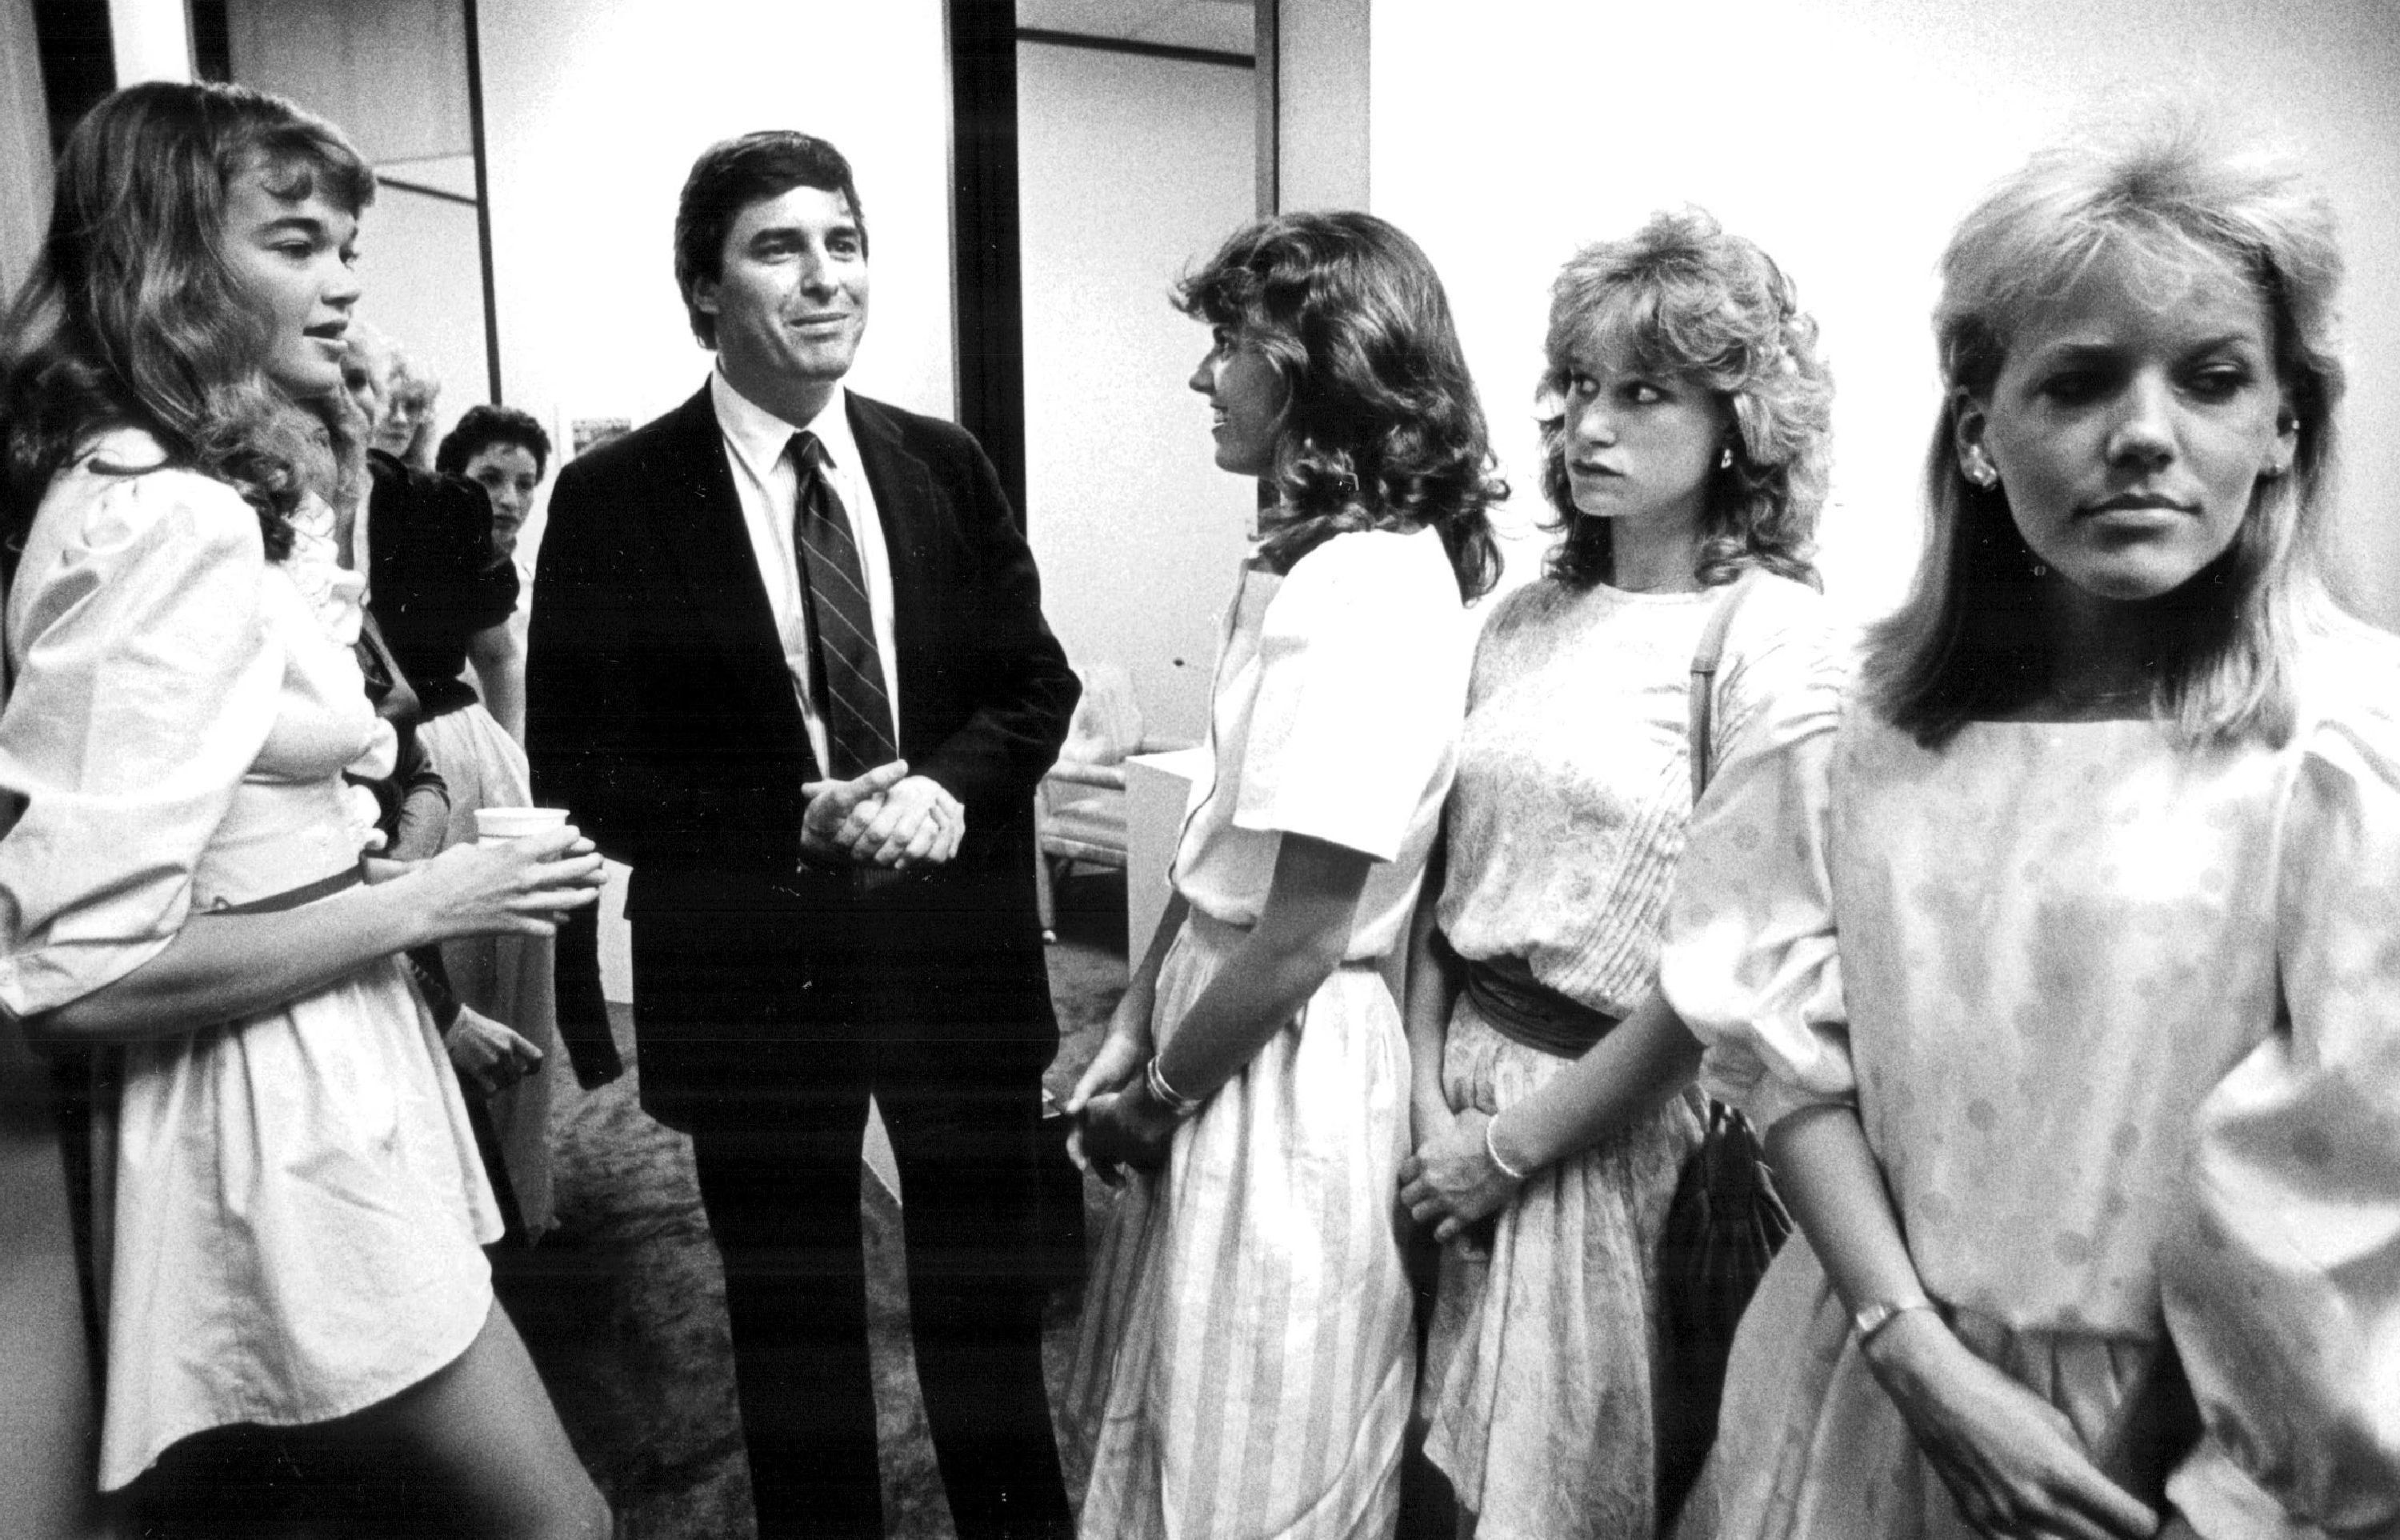 Potential models wait outside the office of Elite Model Management founder John Casablancas in 1983.